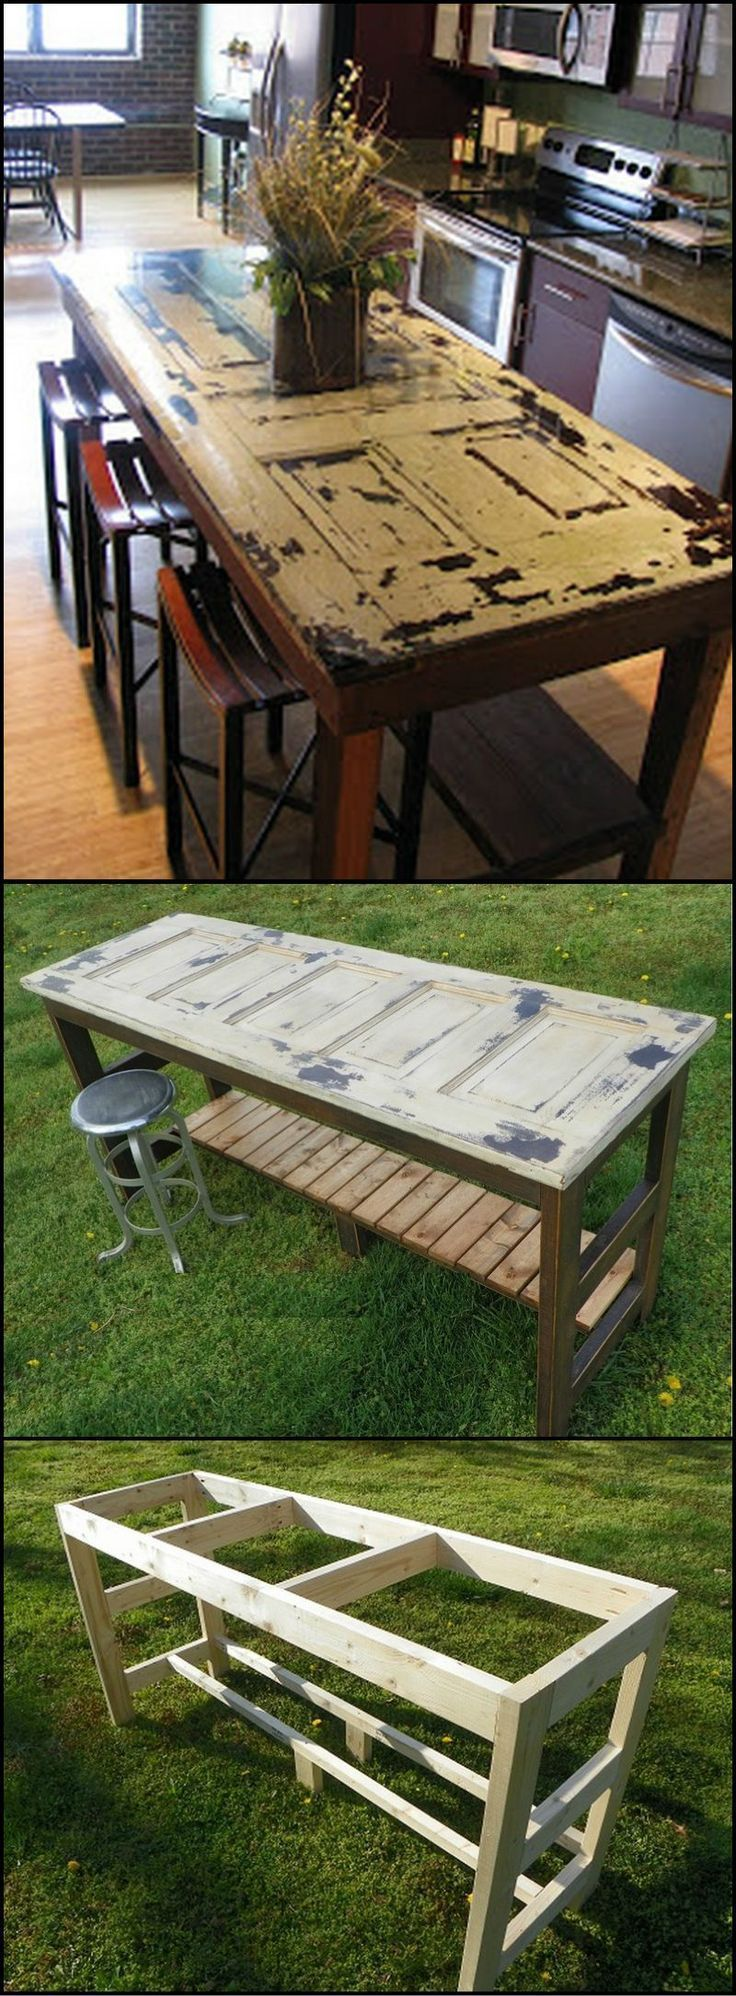 How To Build A Kitchen Island From An Old Door http://theownerbuildernetwork.co/qc33 If your kitchen could use an island or breakfast bar, then this economical project using a recycled door is great. Does your kitchen need one of these?